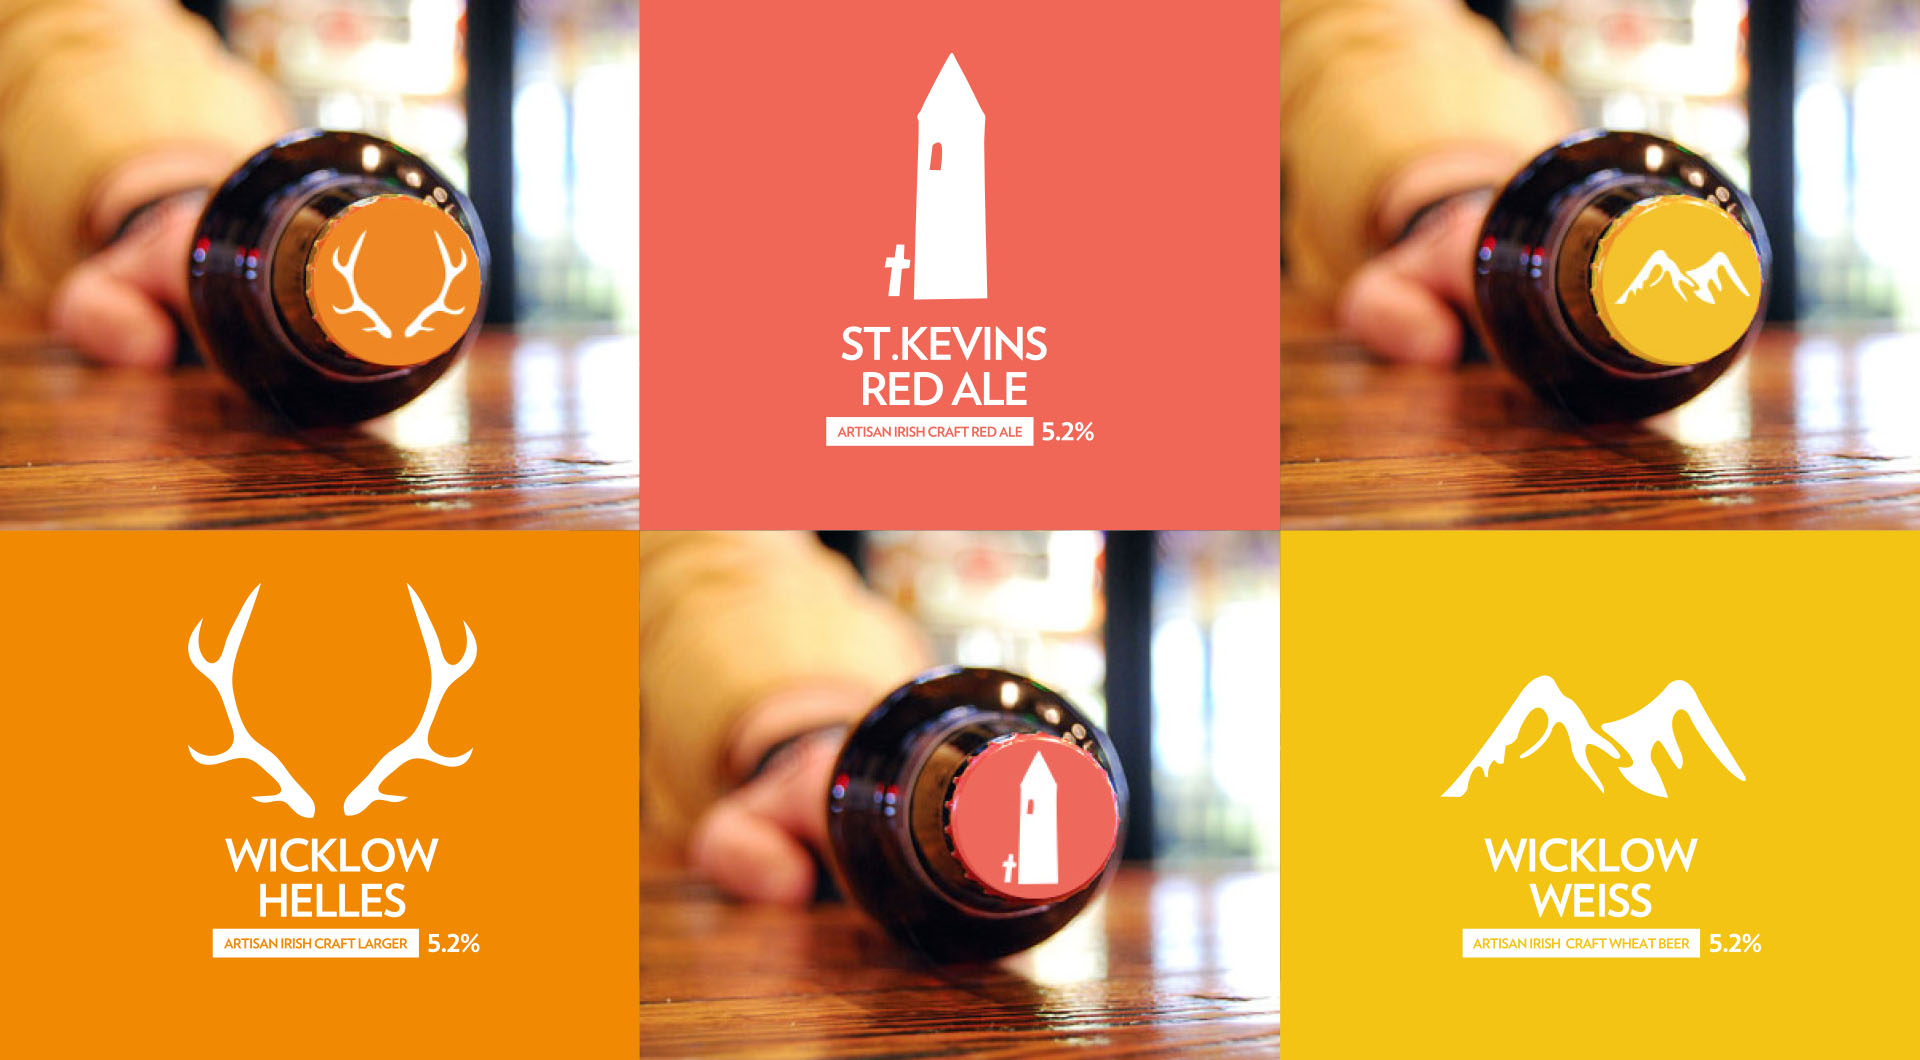 Wicklow Brewery Beer bottle design, beer packaging design, bottle tops.